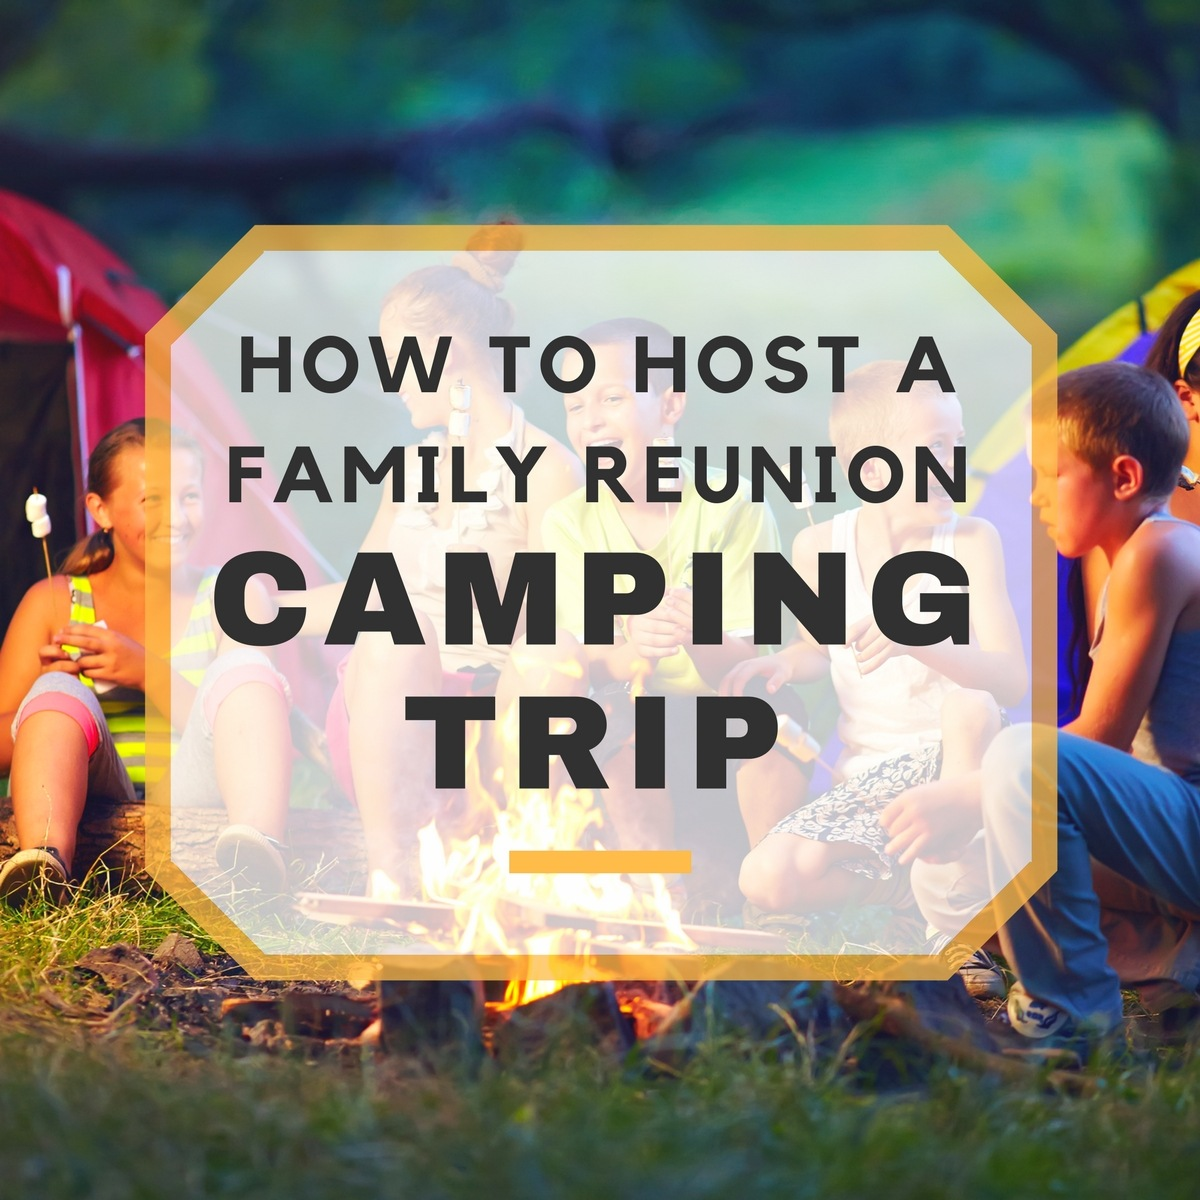 5 Tips For Throwing A Family Reunion Camping Trip